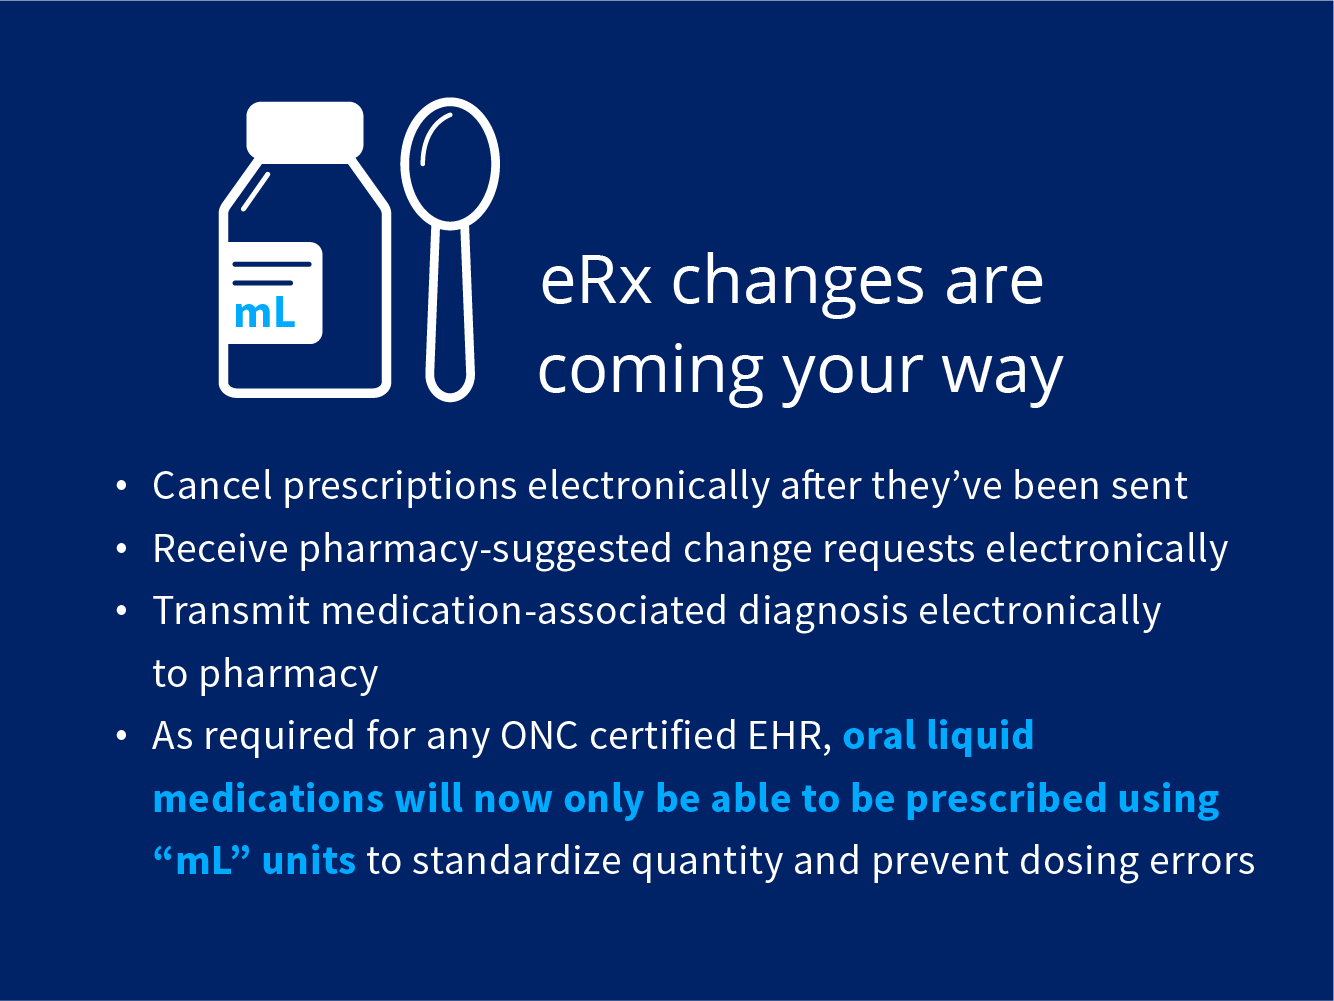 eRx changes are coming your way. 1) Cancel prescriptions electronically after they've been sent. 2) Receive pharmacy-suggested change requests electronically. 3) Transmit medication-associated diagnosis electronically to pharmacy. 4) As required for any ONC certified EHR, oral liquid medications will now only be able to be prescribed using mL units to standardize quantity and prevent dosing errors.